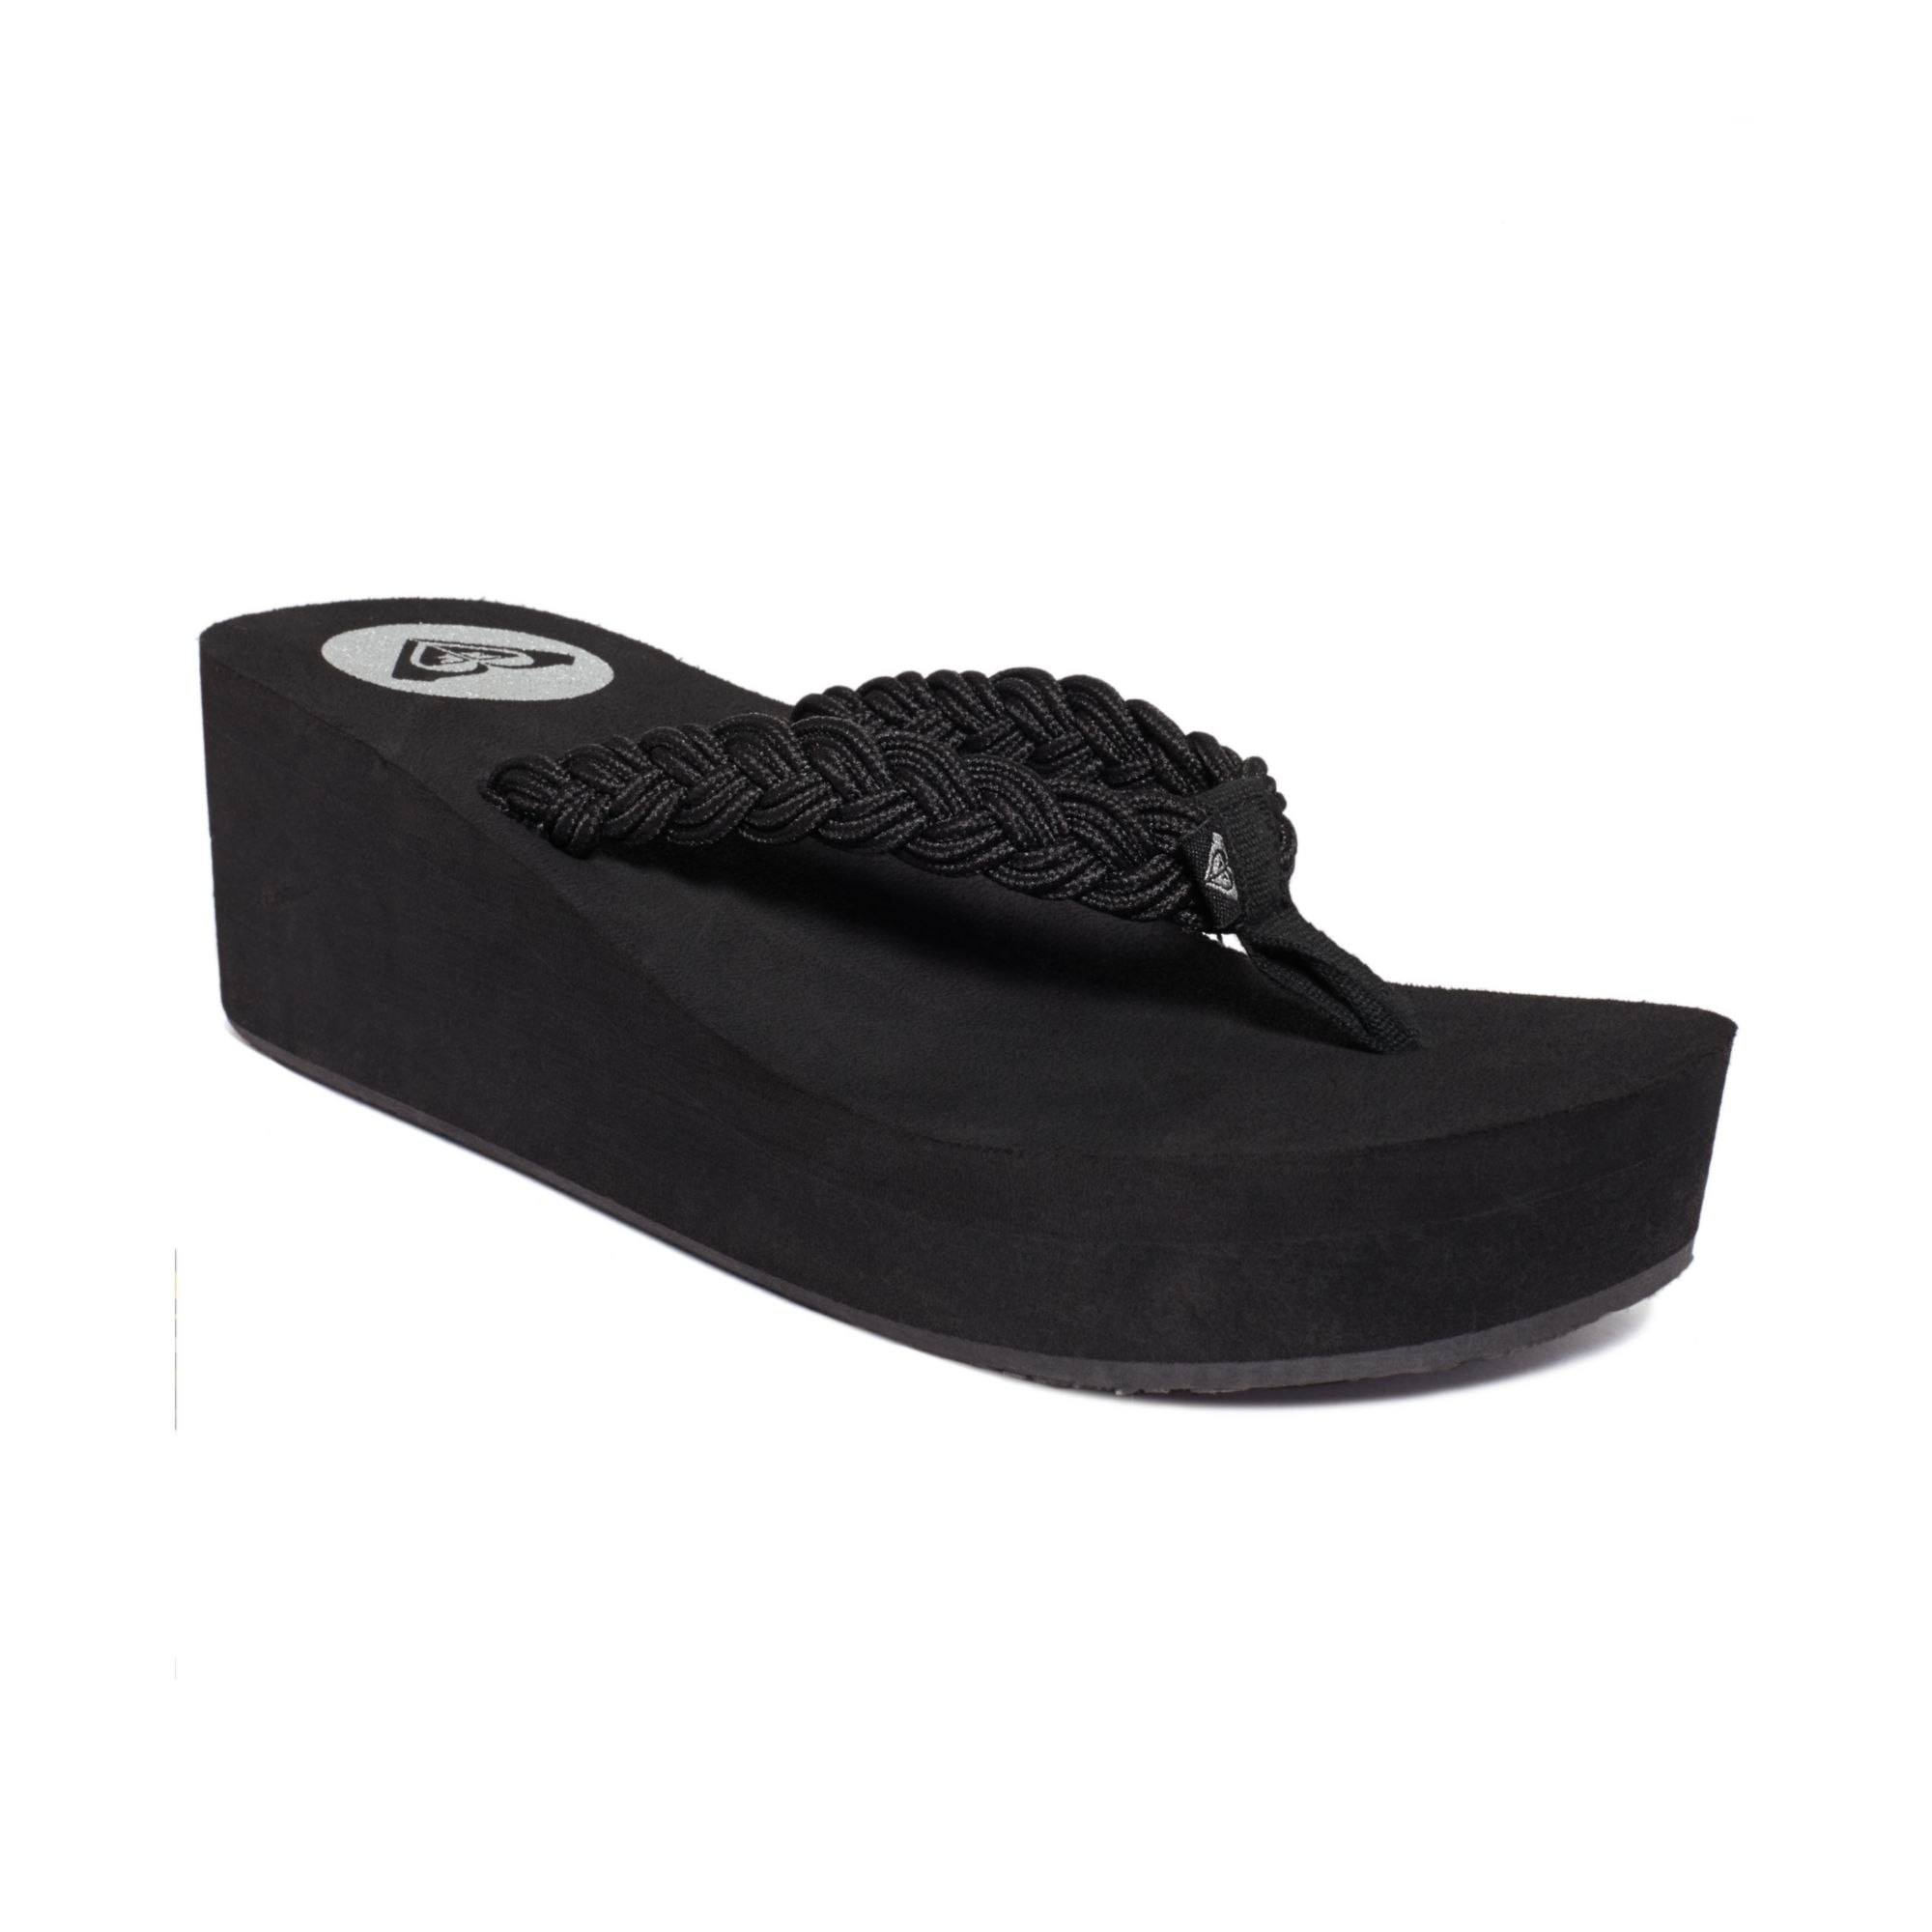 c88166832471 Roxy Tidal Wave Braided Wedge Thong Sandals in Black